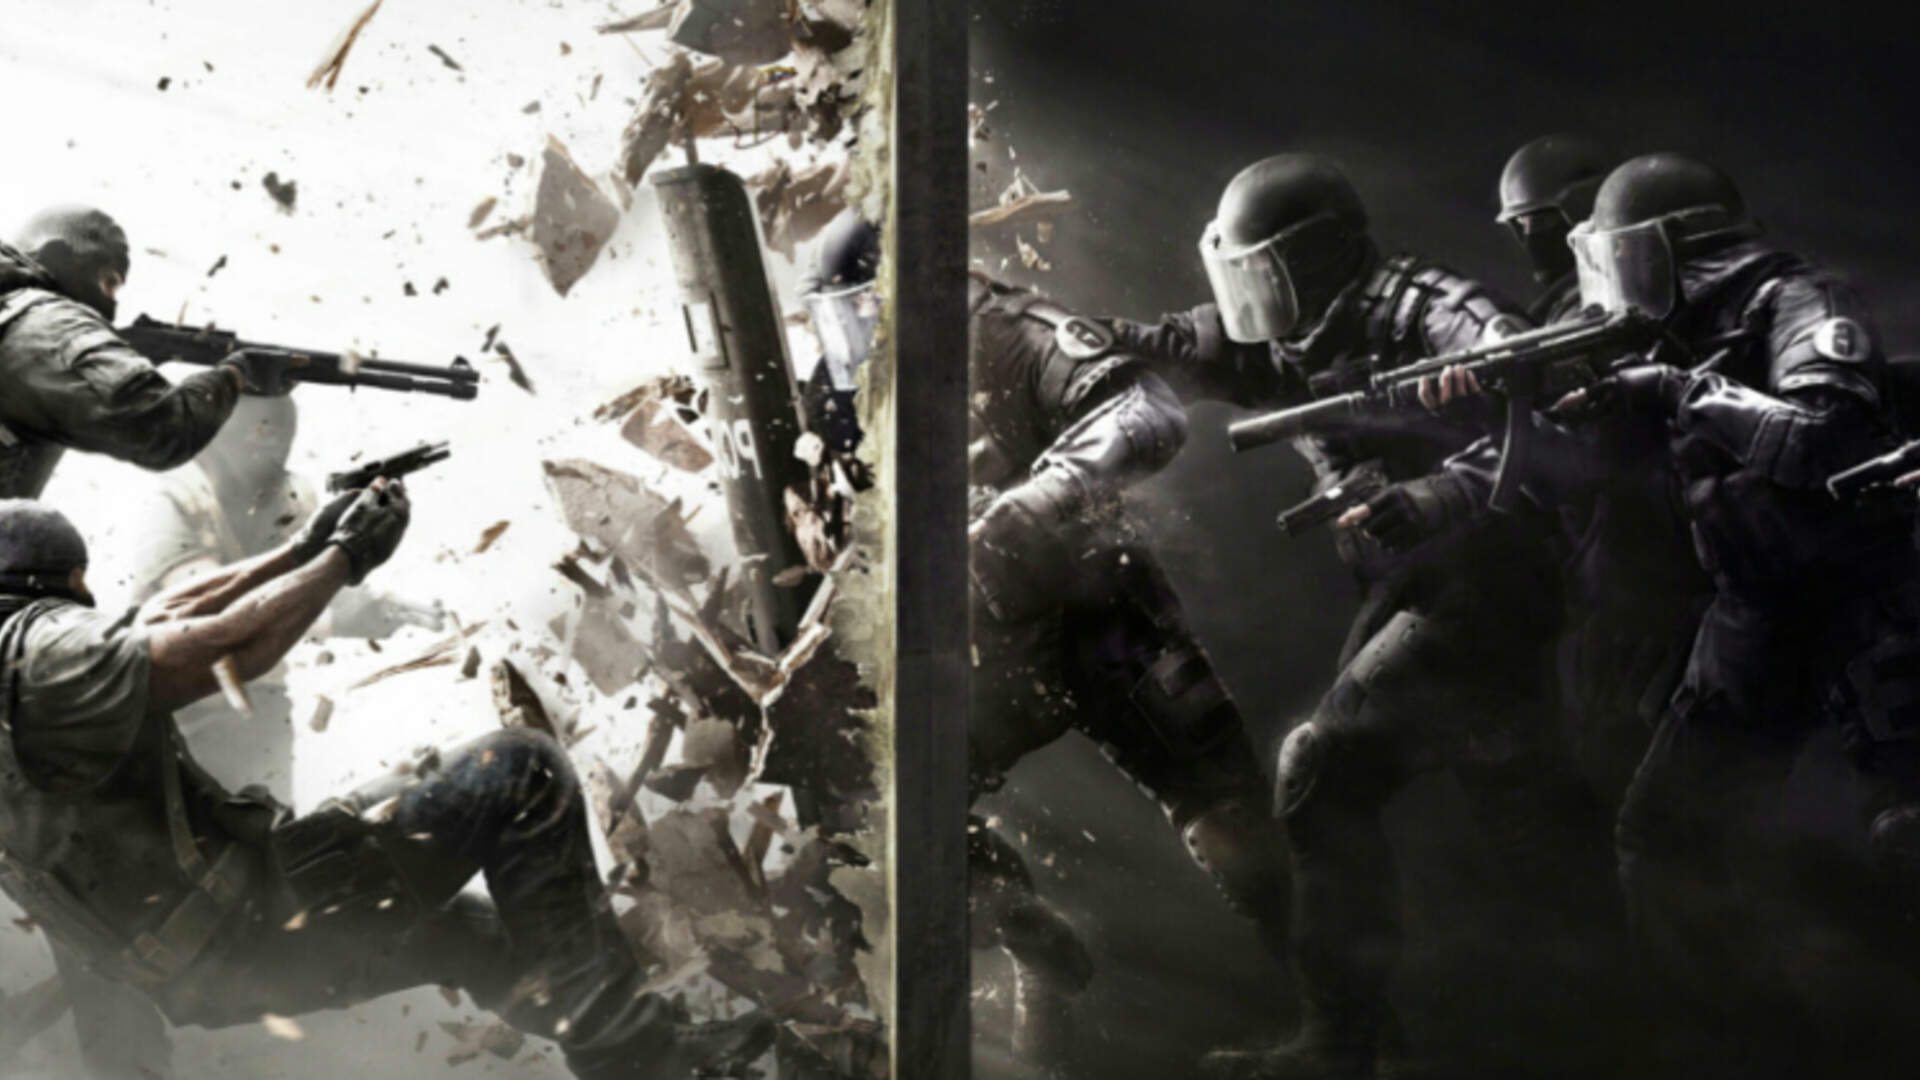 Rainbow Six: Siege PC Review: Tense, Tactical Shooter